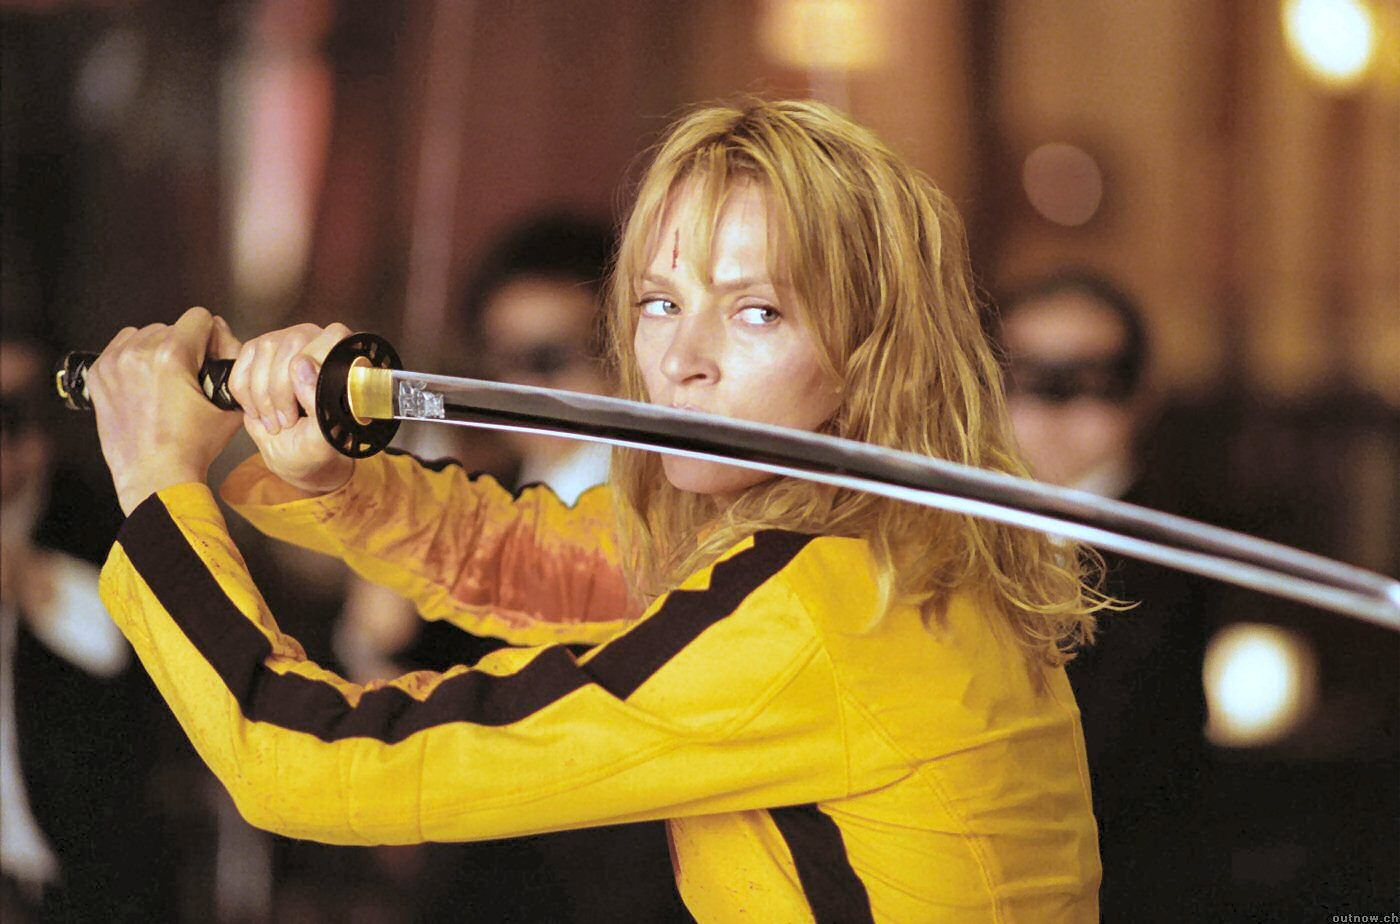 Rumor has it, there's a good chance 'Kill Bill 3' is happening